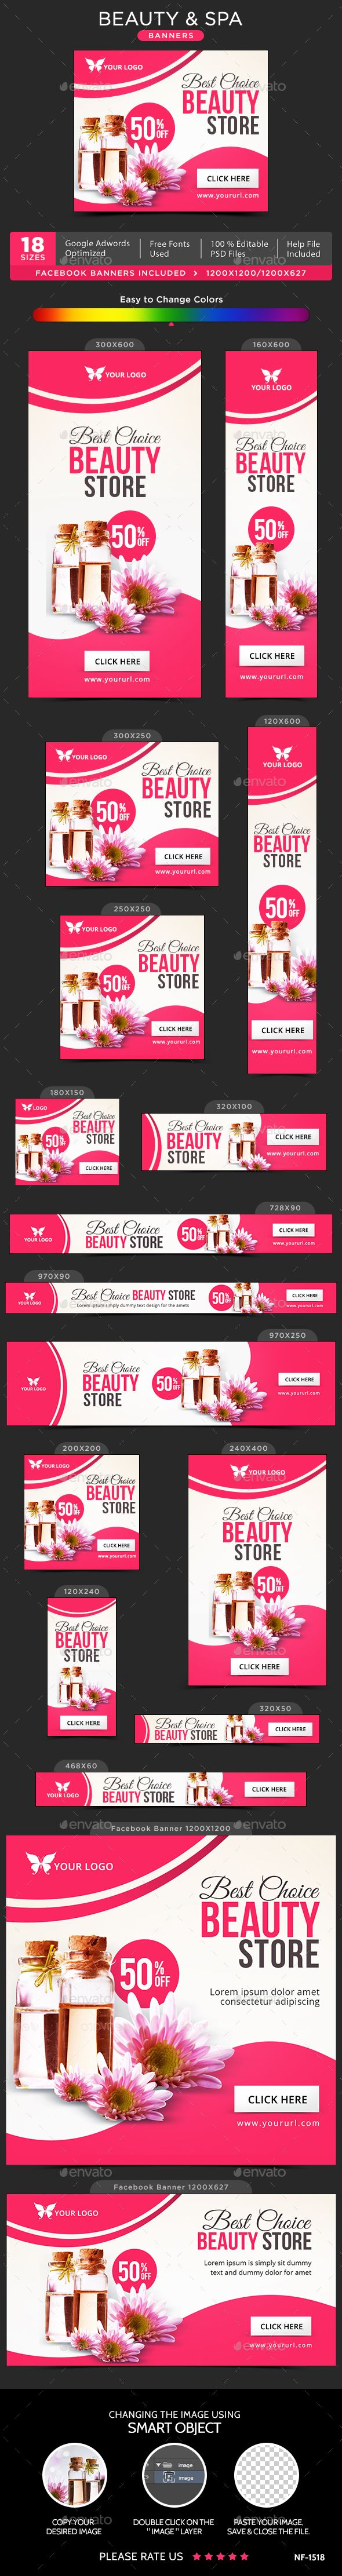 Beauty & Spa Banners Design Template  - Banners & Ads Web Element…